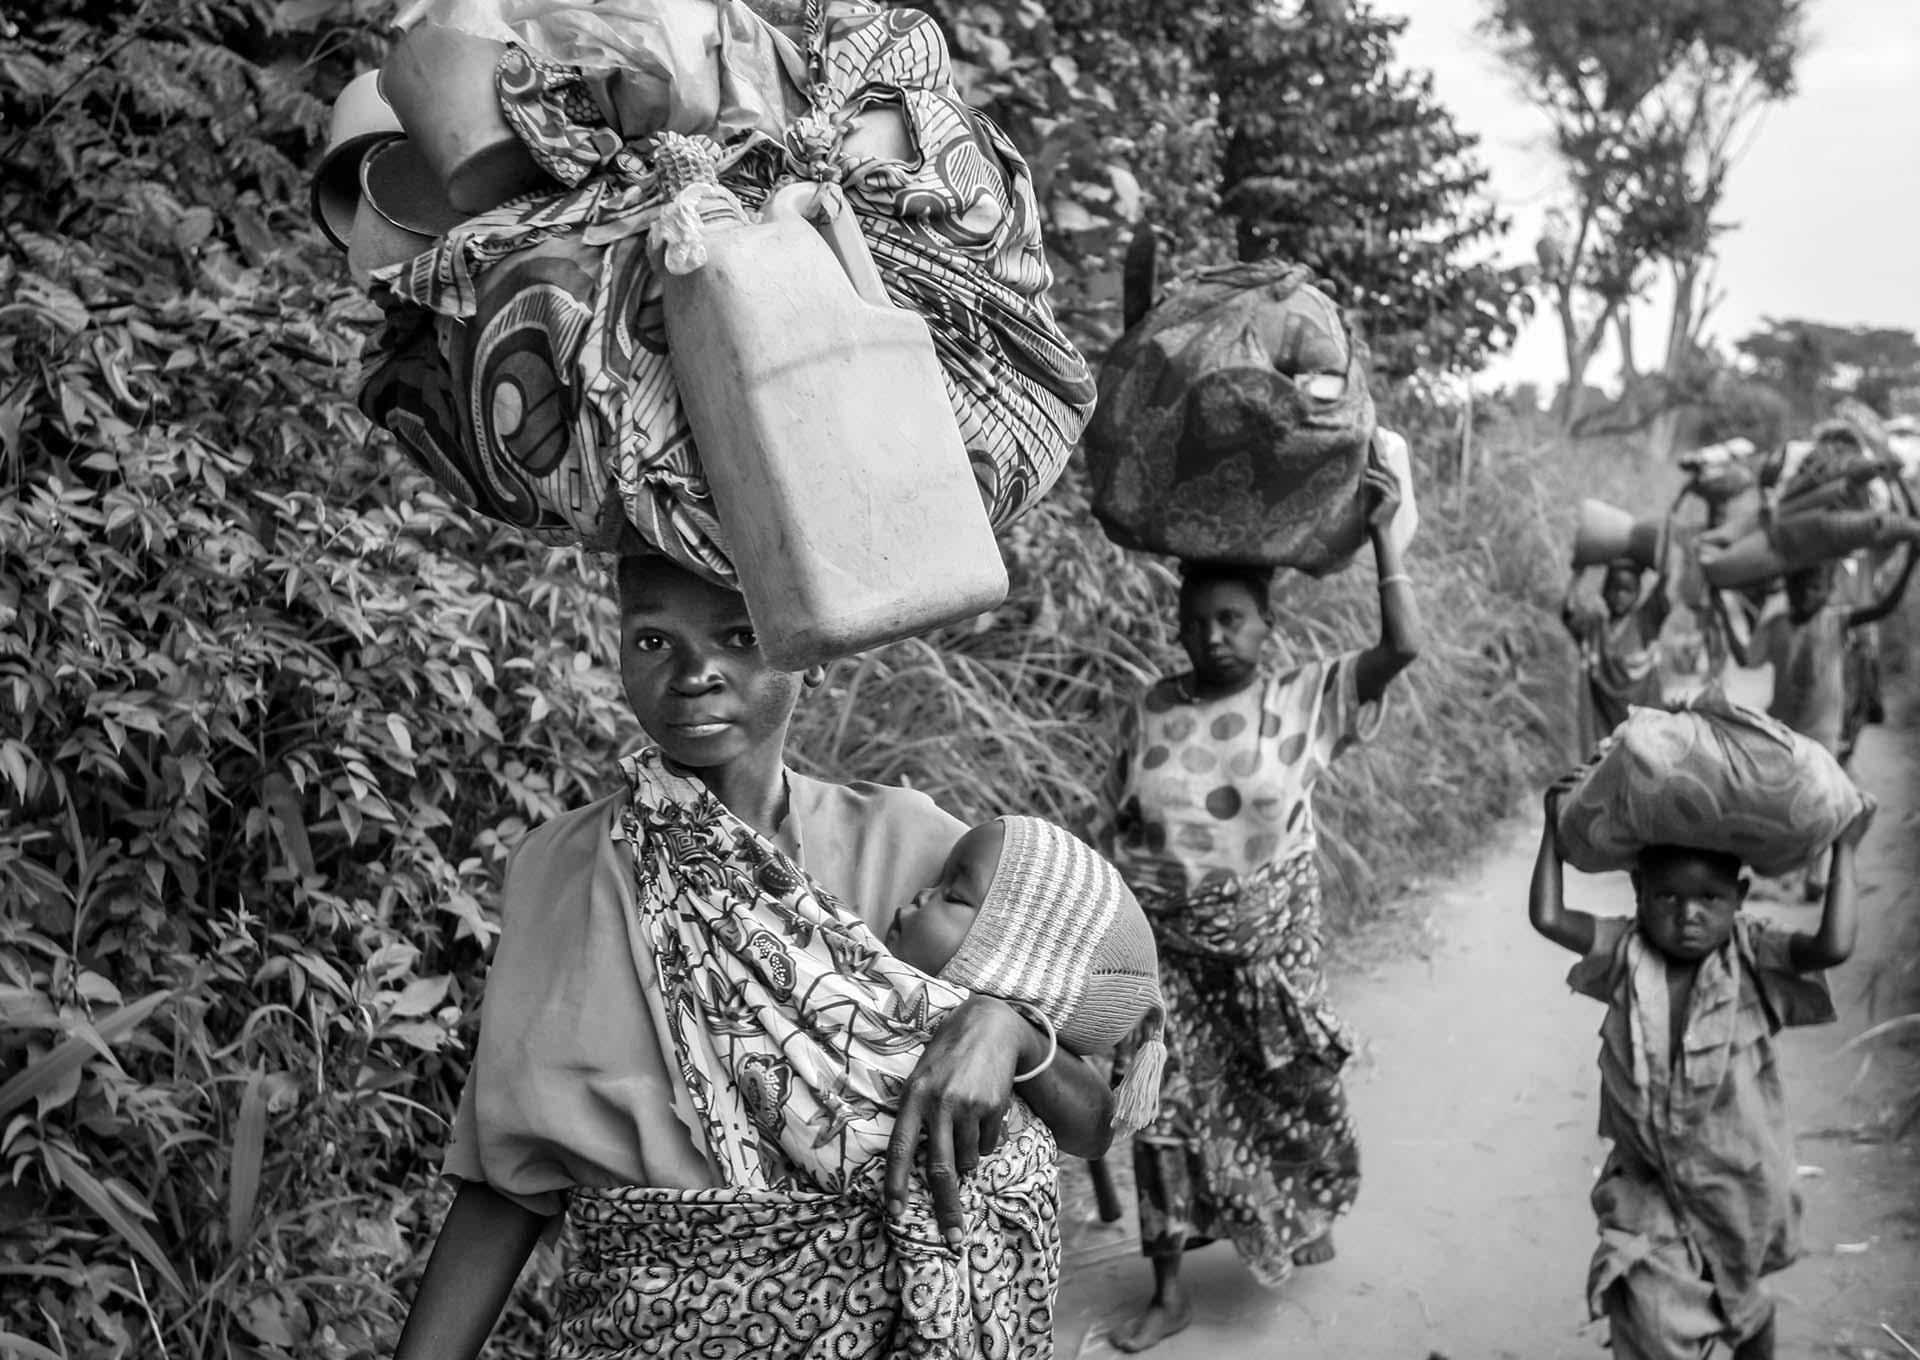 With all they can carry, Congolese IDPs make a long journey to find a safe haven near the village of Gety in mineral-rich Ituri region.